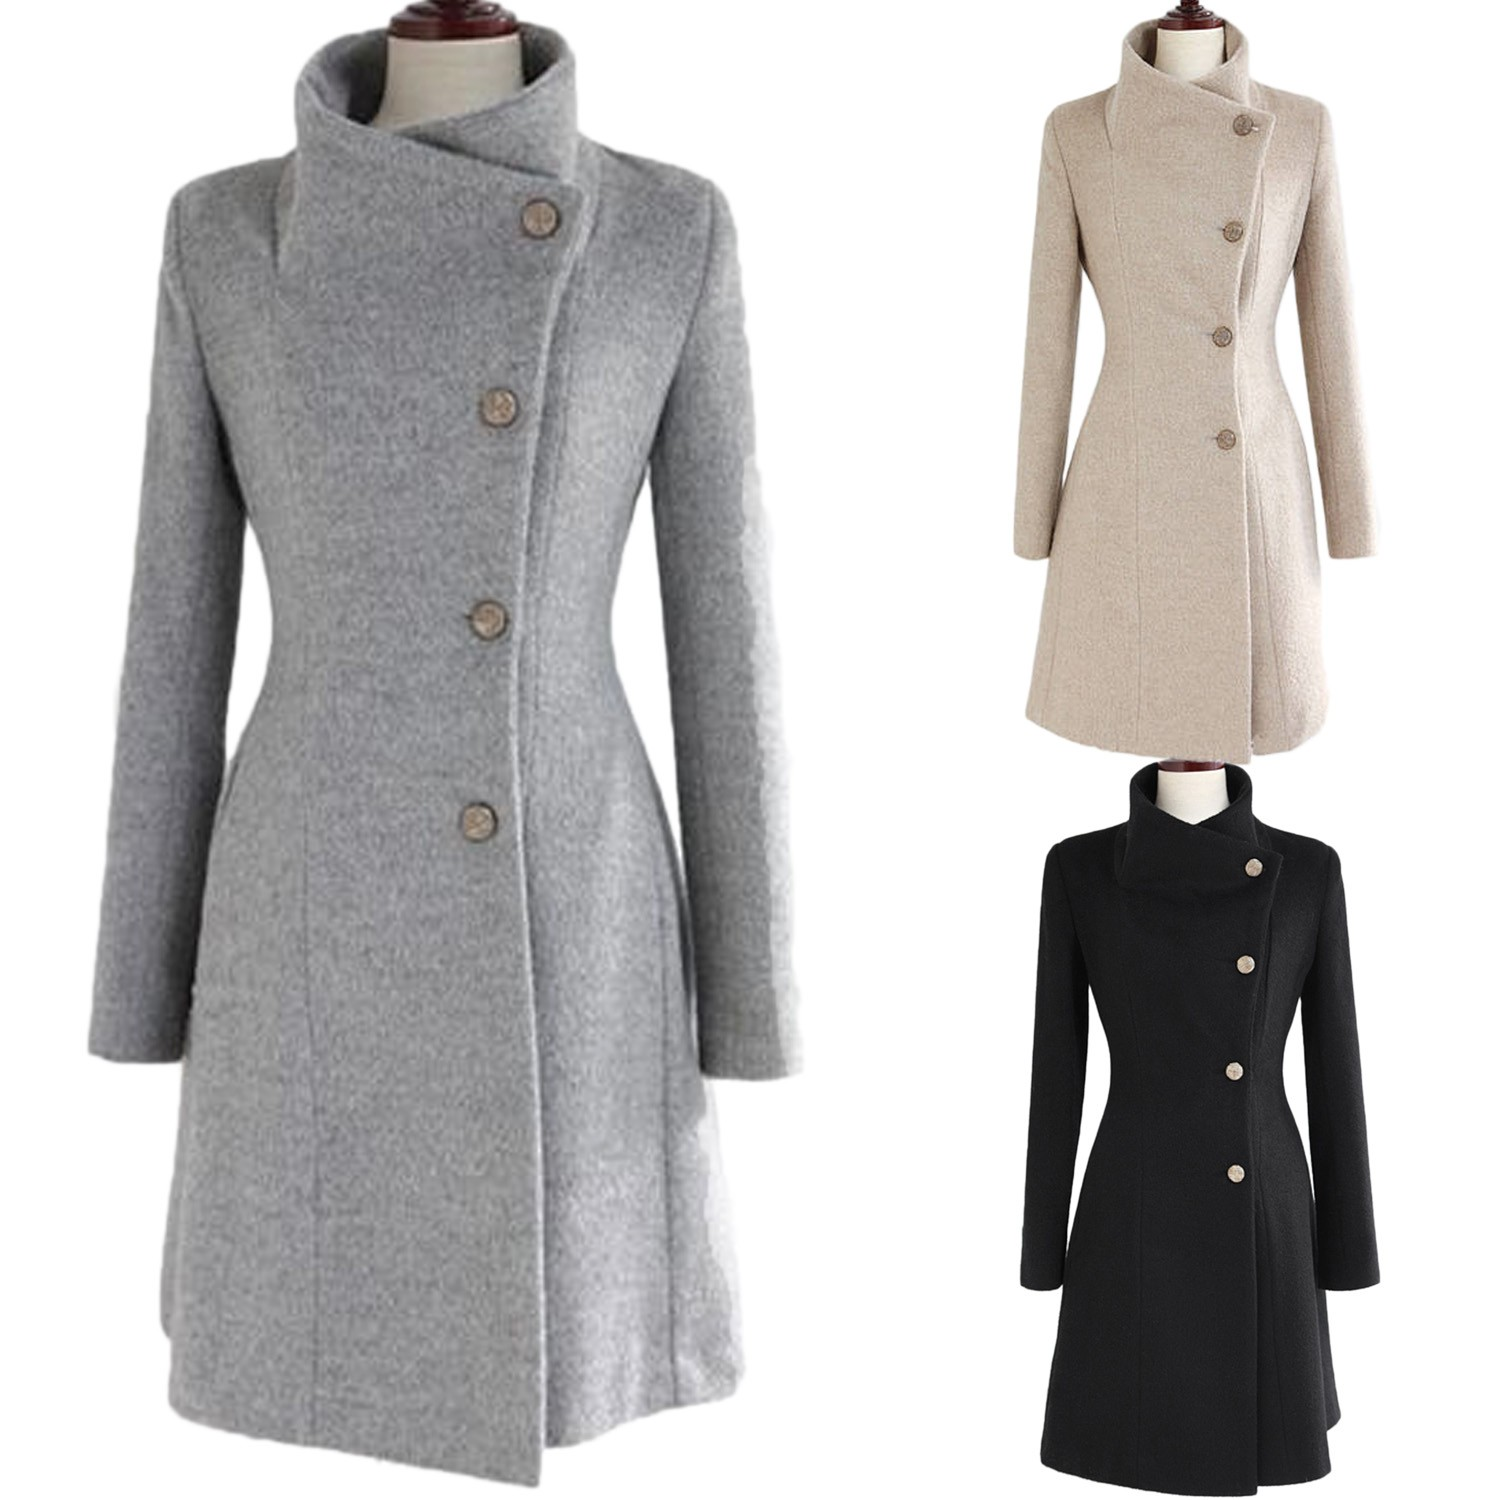 Long Sleeve Ladies Button Winter Vintage Upright Collar Belted Coat Jacket